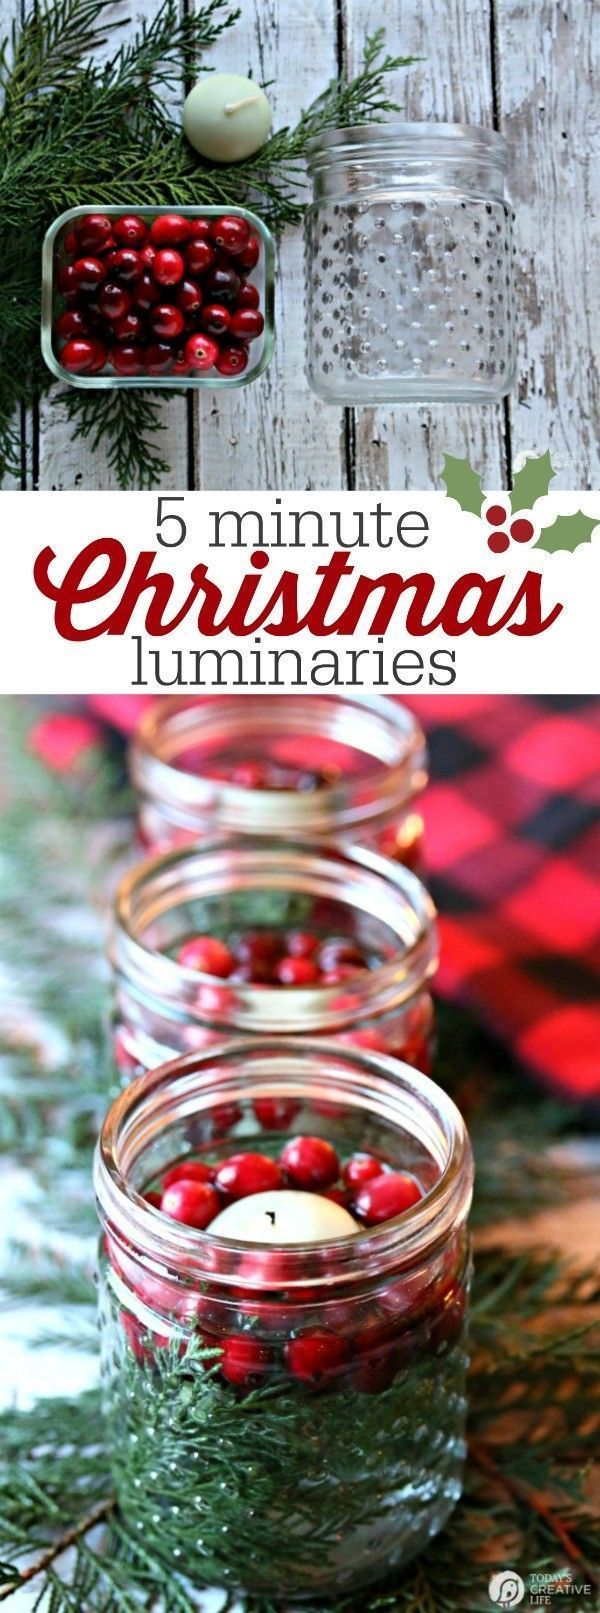 5 minute Christmas luminaries make fun seasonal home decor! Perfect centerpiece ...